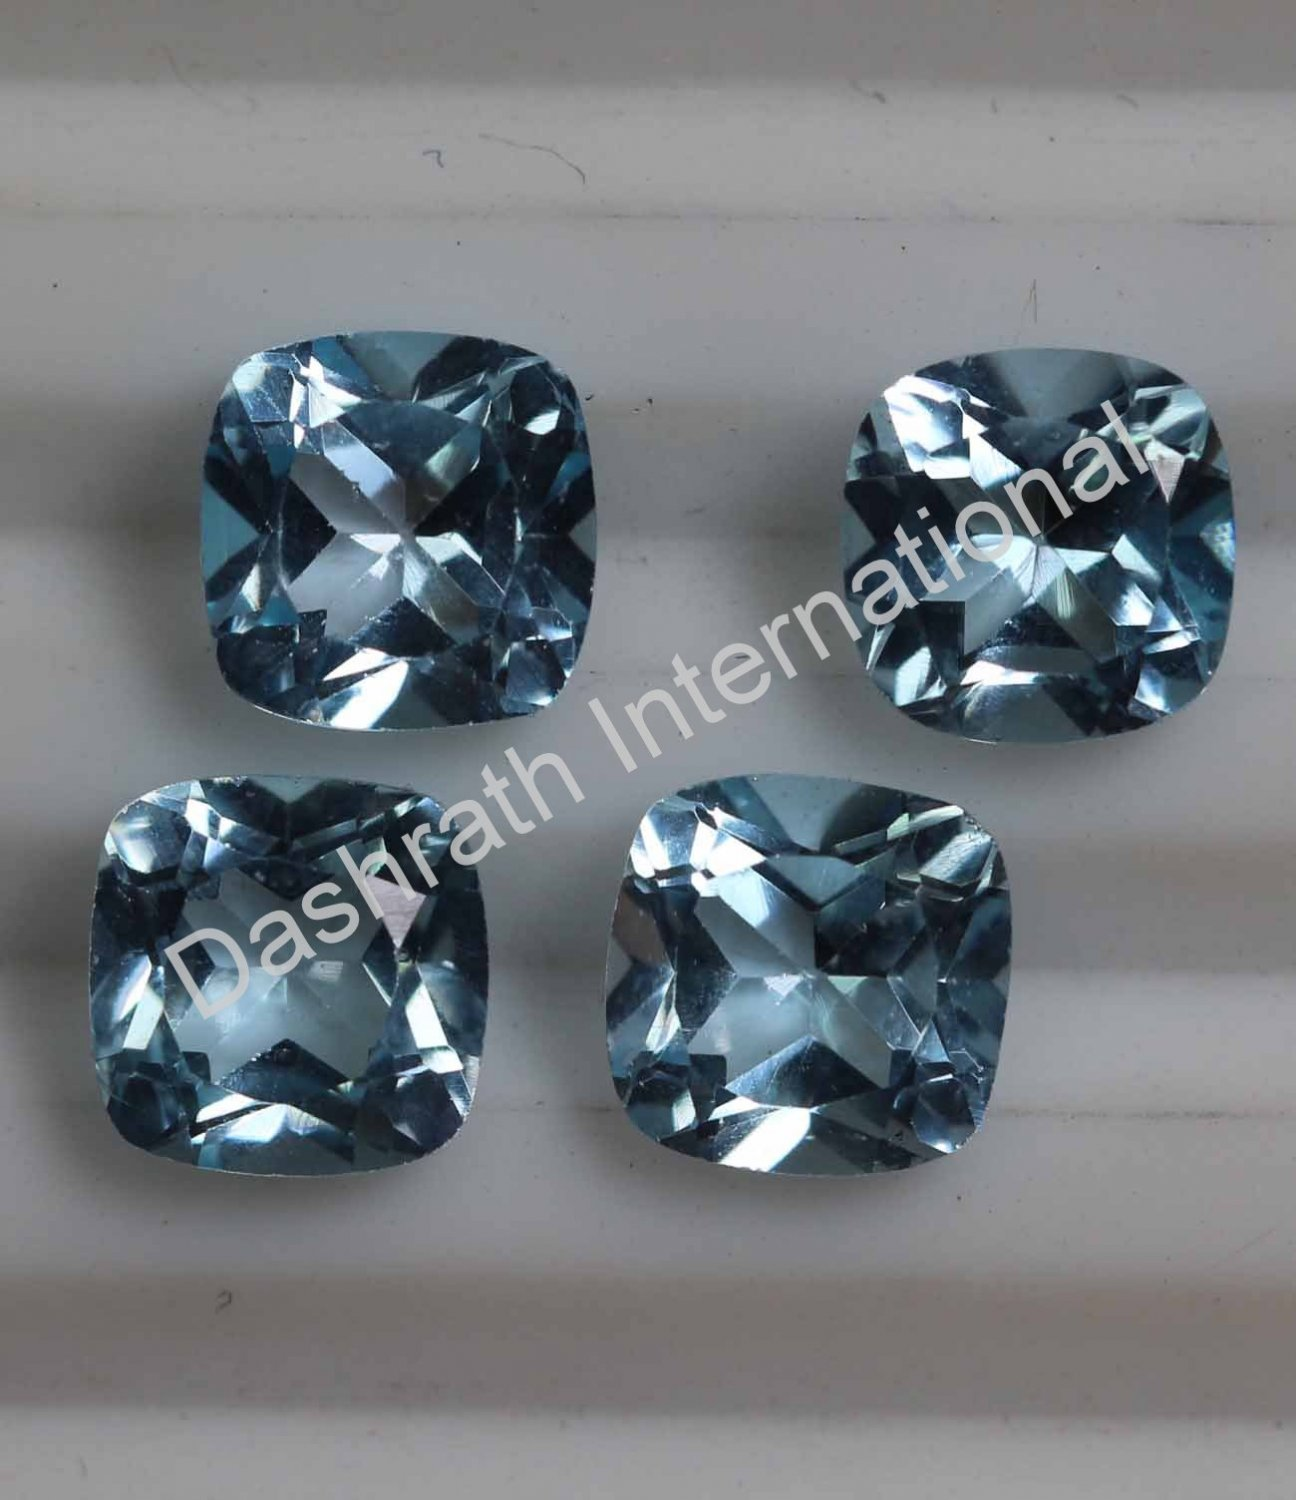 7mm Natural Sky Blue Topaz Faceted Cut Cushion 25 Pieces Lot Top Quality Loose Gemstone